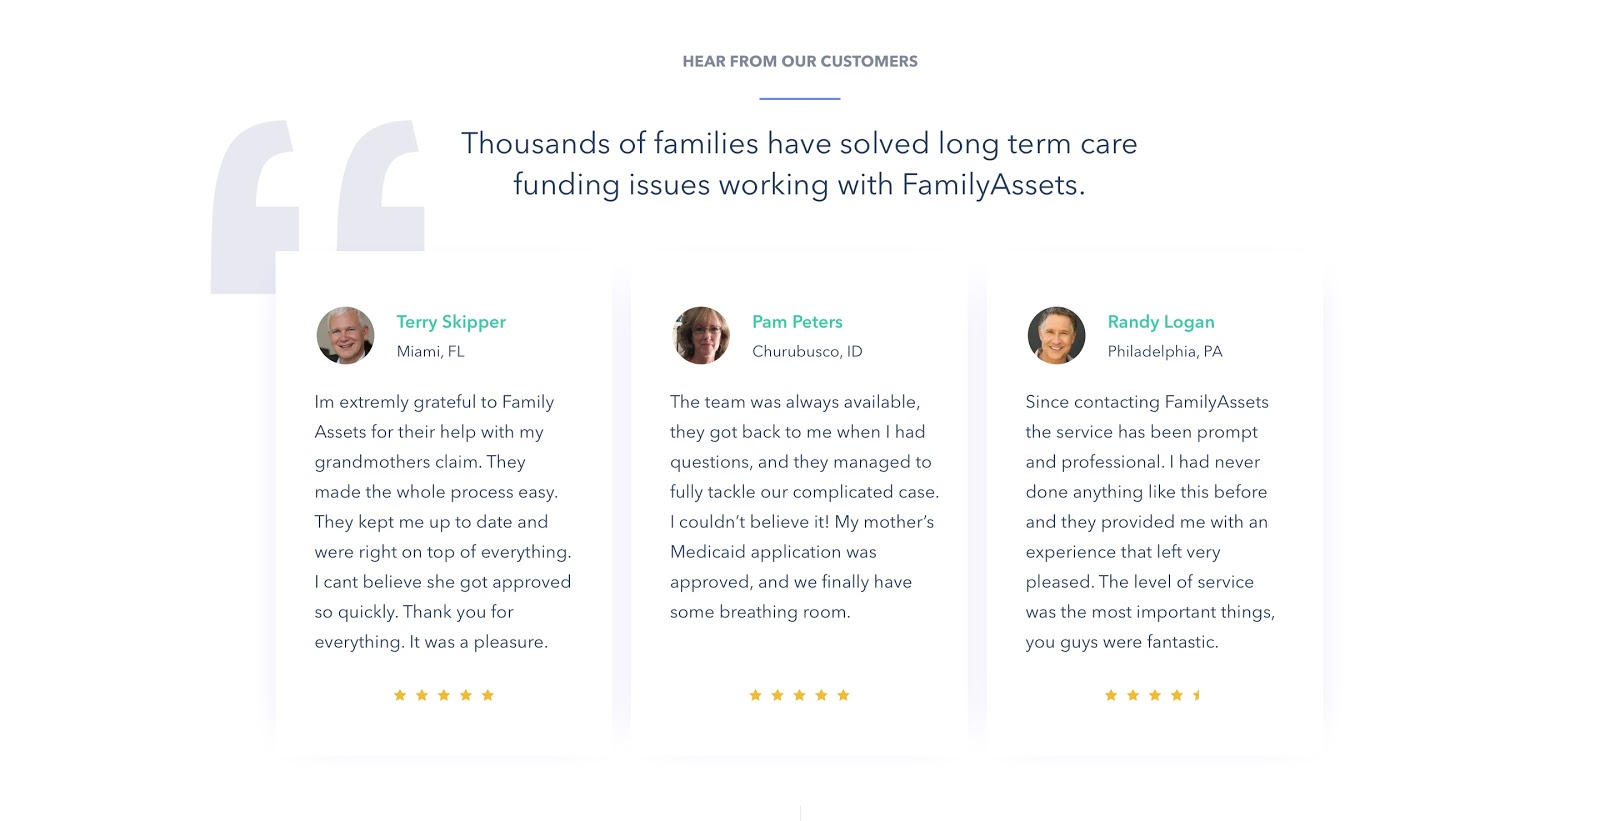 landing page not converting Testimonials section with star ratings.